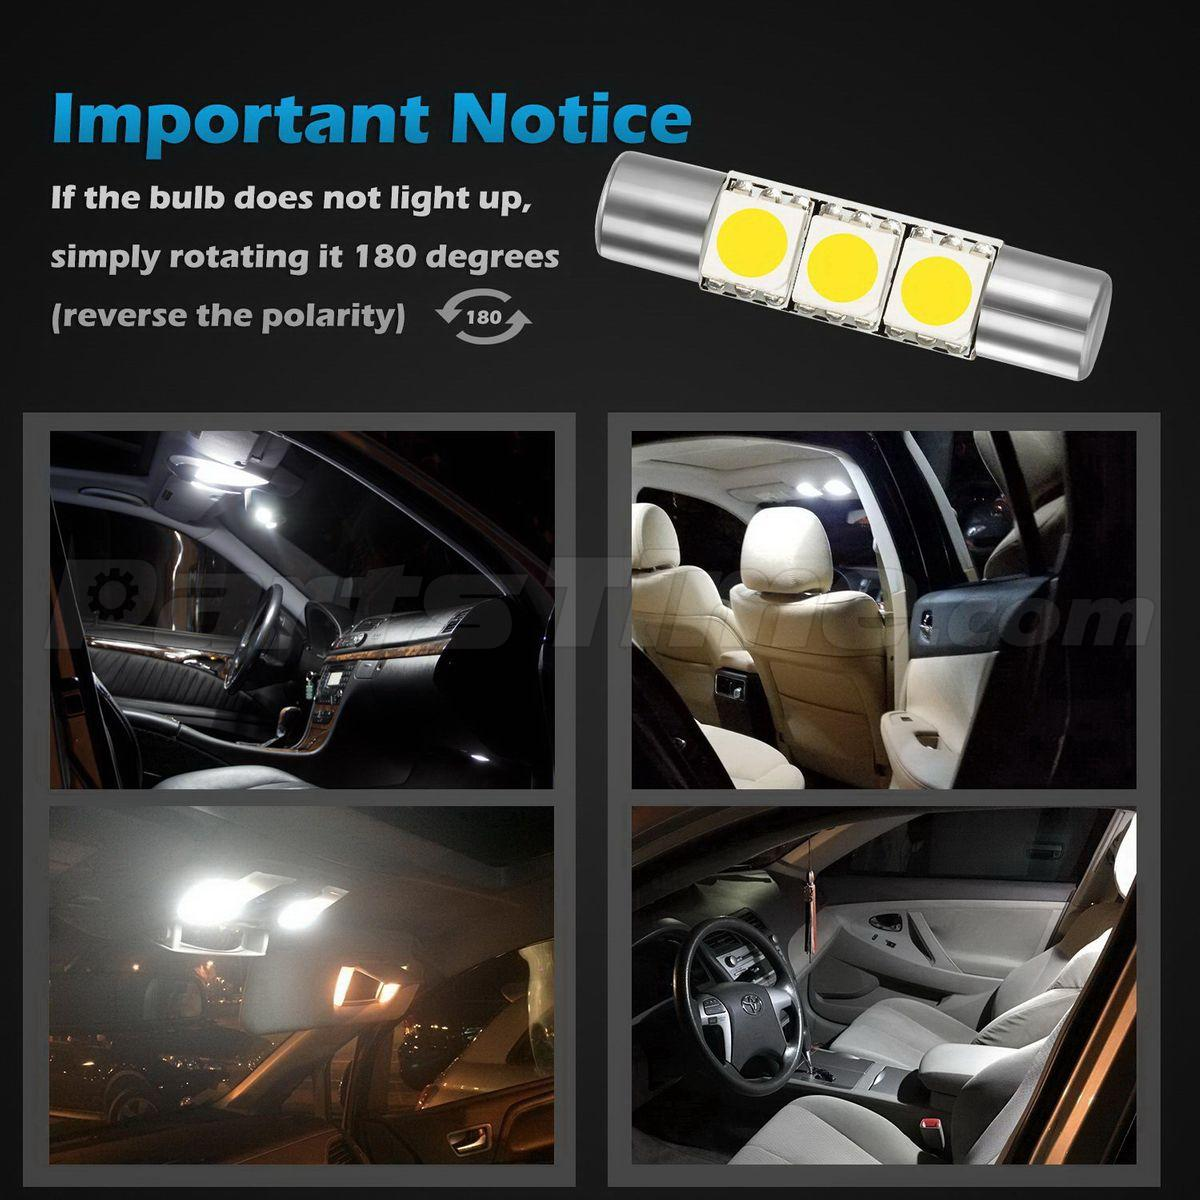 Vanity Light For Car Visor : 4x New Xenon White 3 SMD 6641 Fuse LED Visor Vanity Mirror Lights 12V Car Bulbs eBay